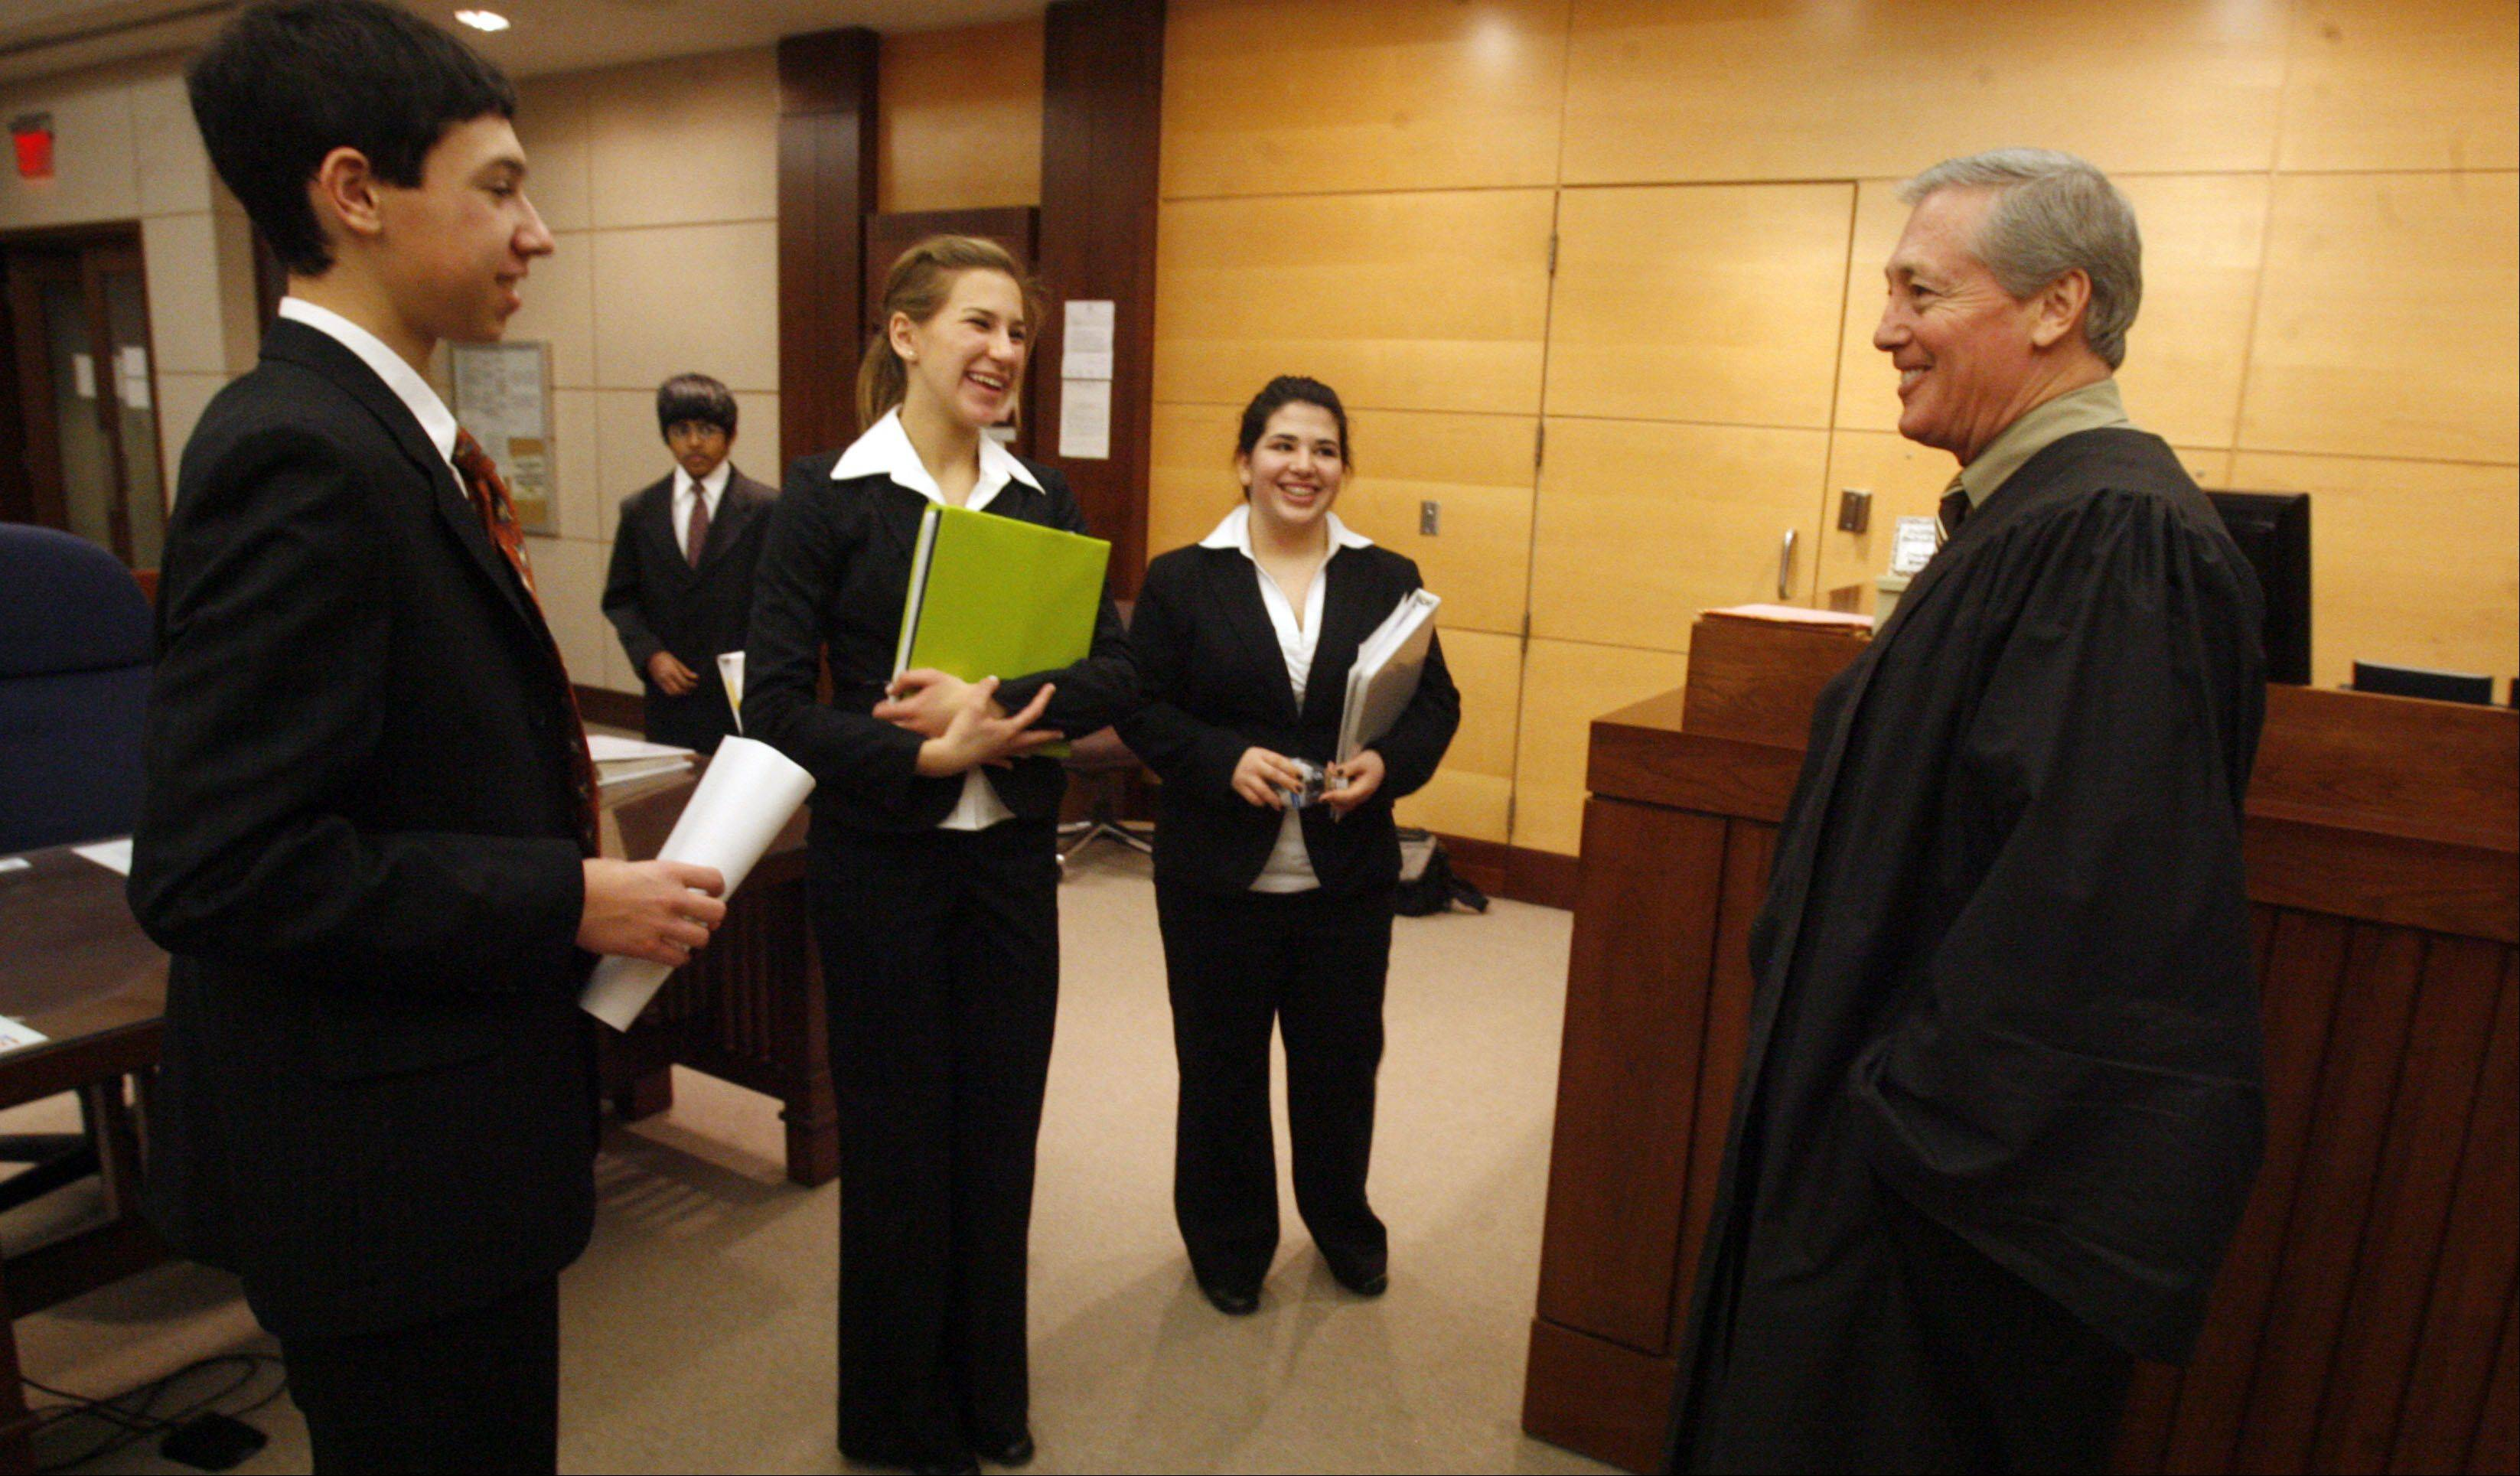 Hinsdale High School students talk to Judge Timothy Sheldon after the 10th annual St. Charles Mock Trial Tournament in 2008 at the Kane County Judicial Center in St. Charles.